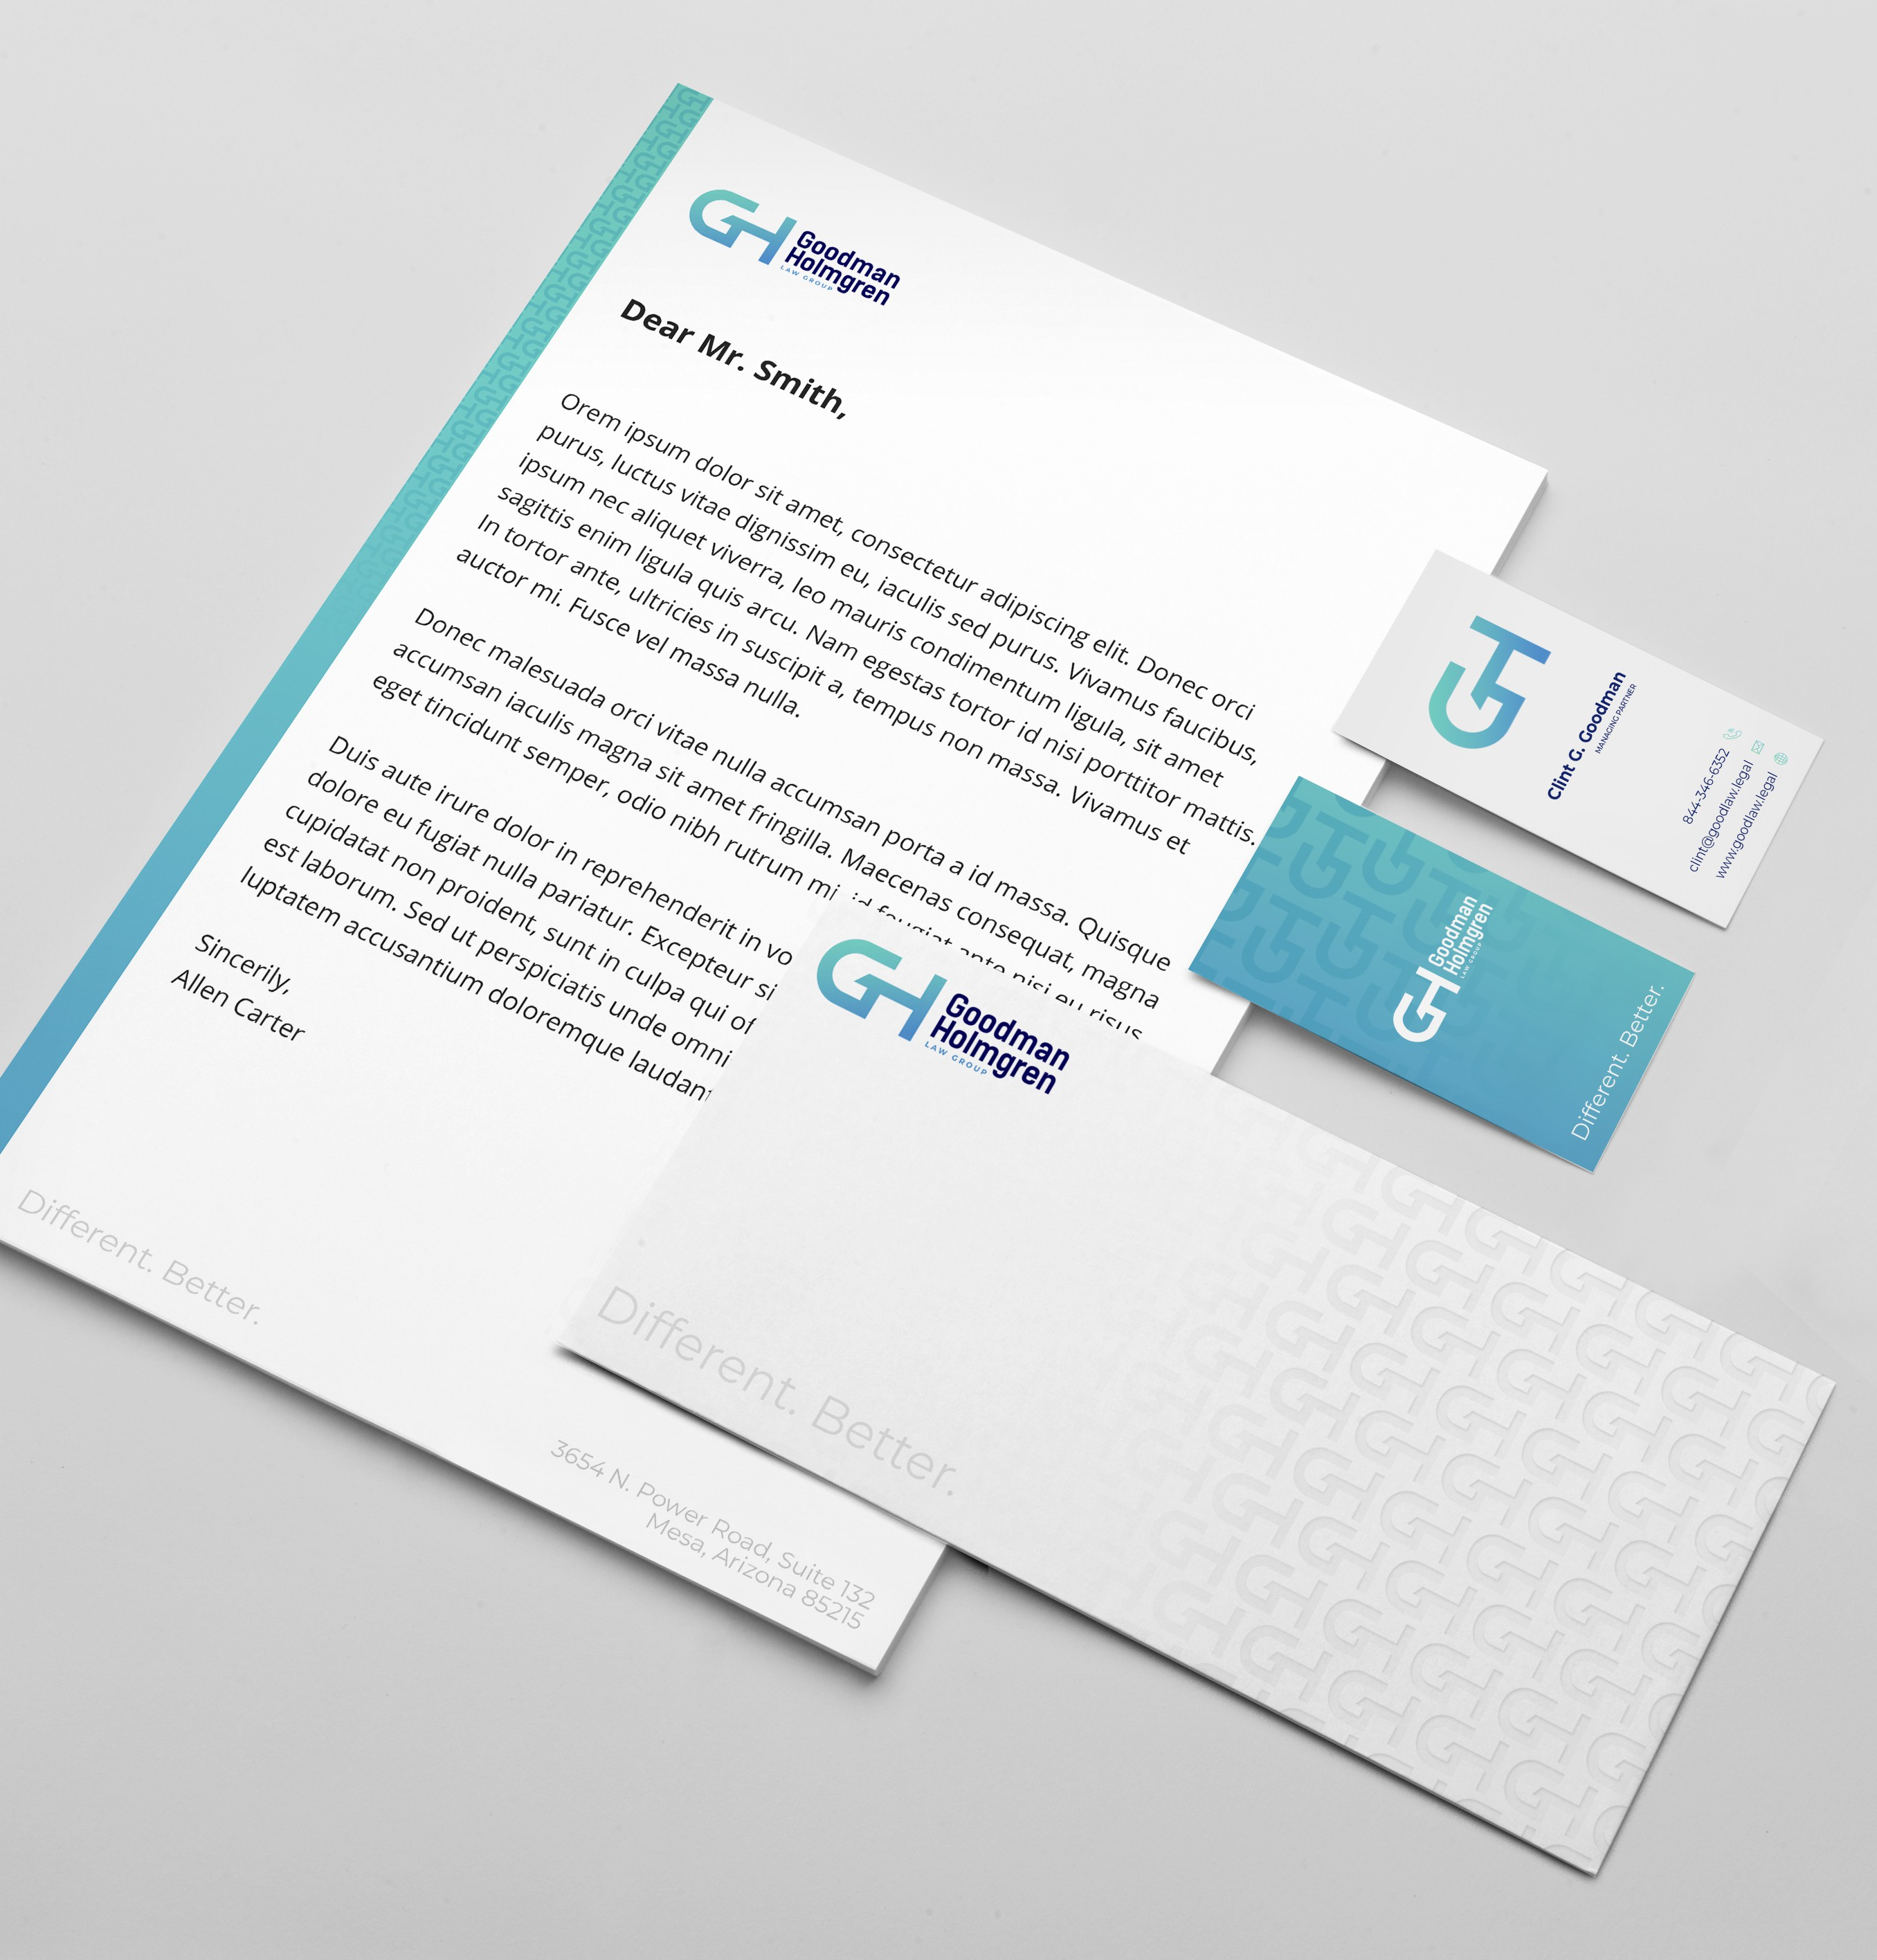 Logo / Biz Package for Tech Savvy, Refreshing Law Firm